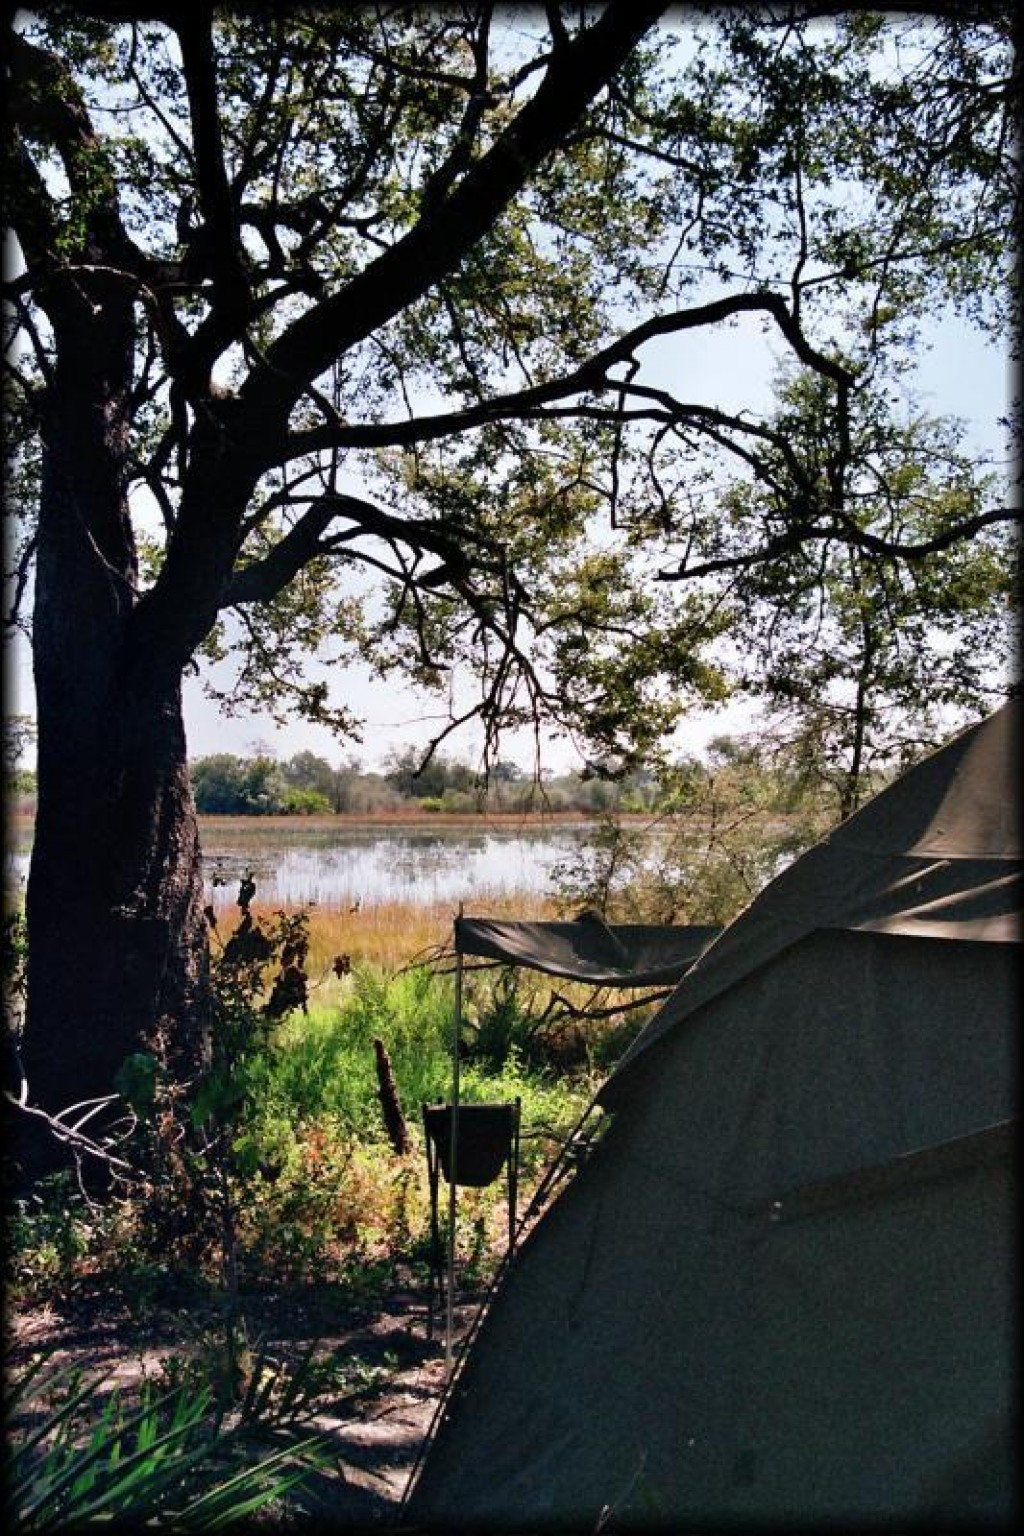 Our tent had a beautiful view of the Delta.